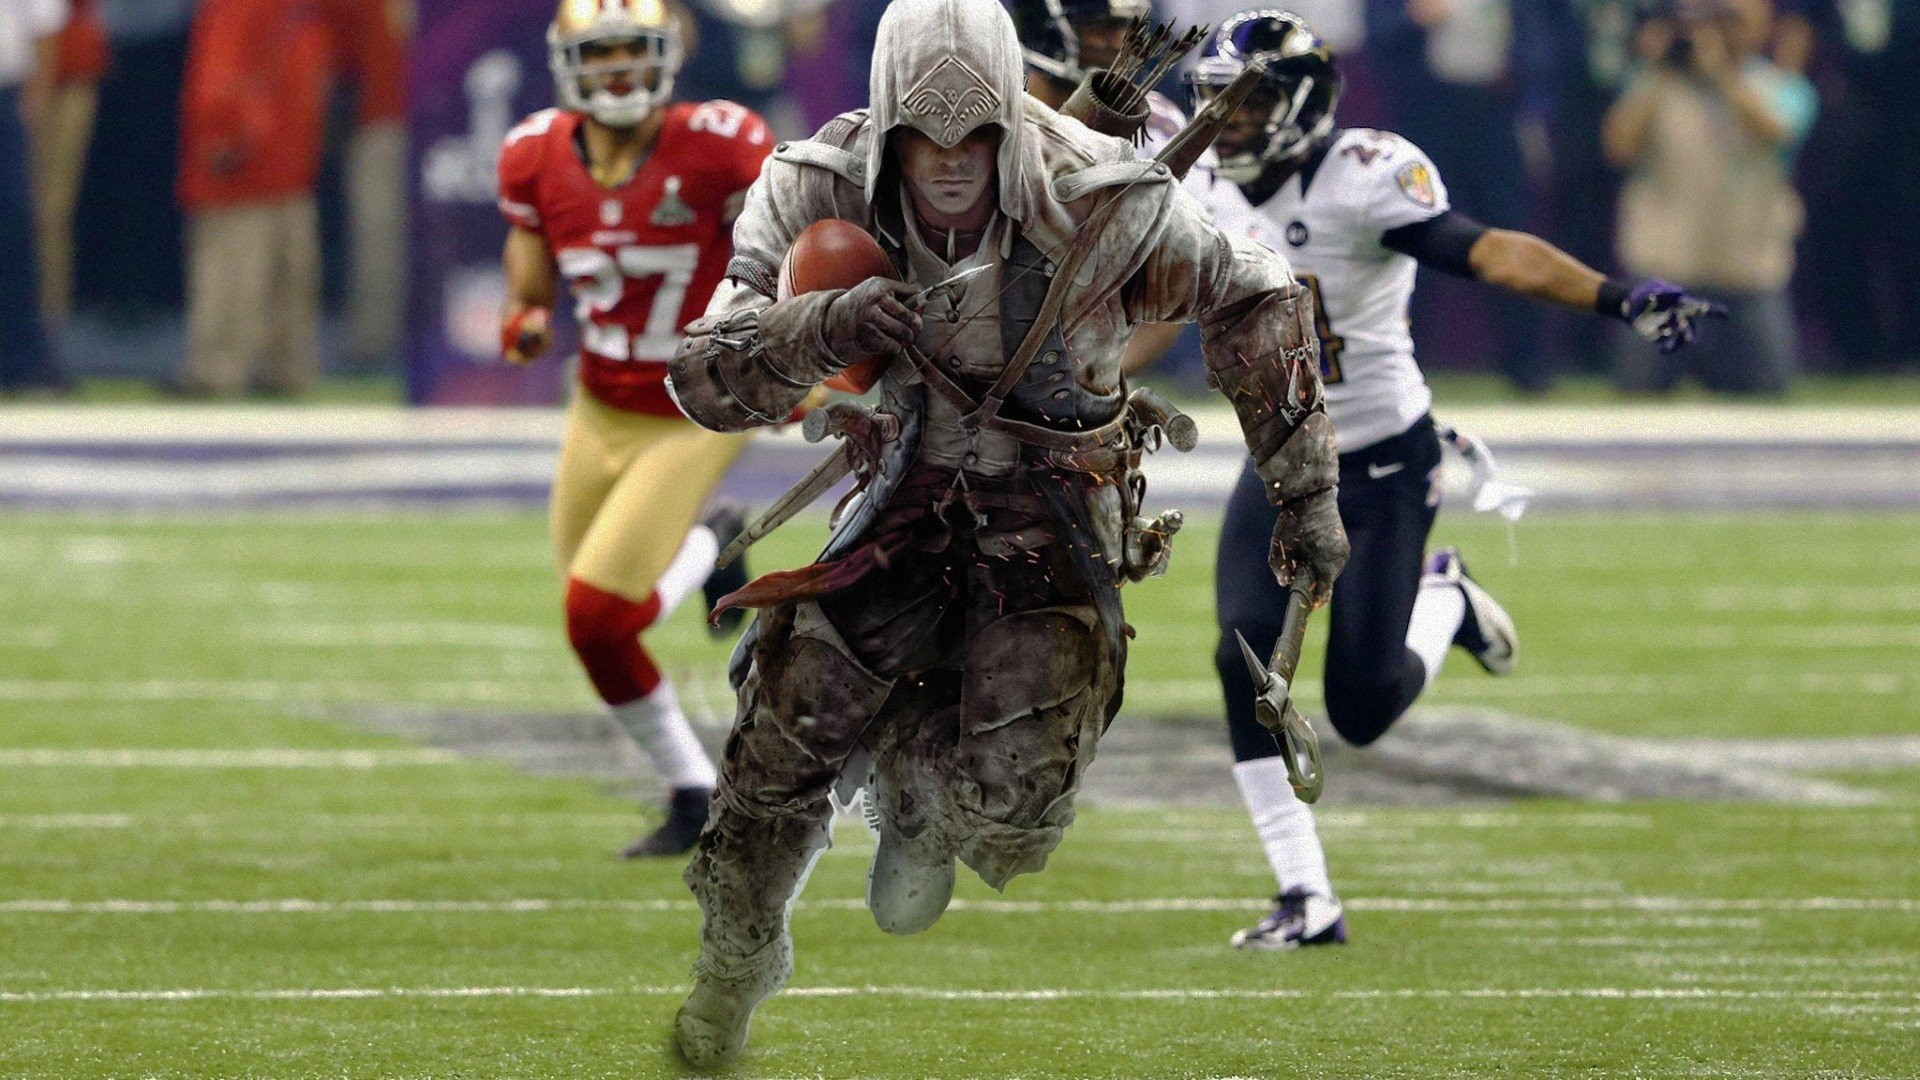 1920x1080 American Football Assassins Creed 3 Connor Kenway Funny Sports